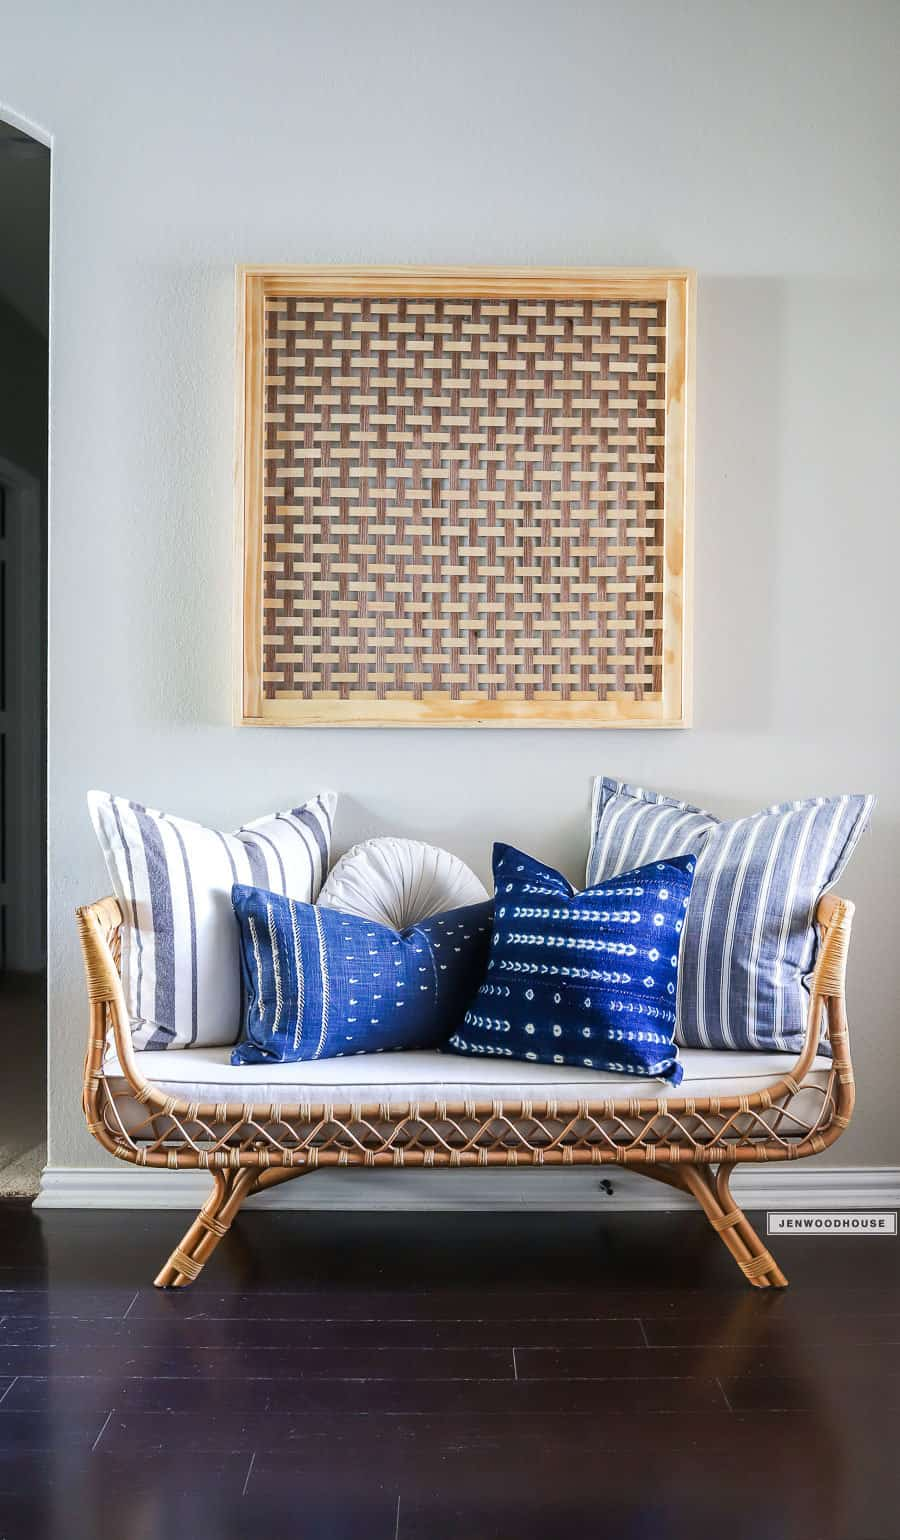 Create Your Own Wall Art Knockoffdecor Com